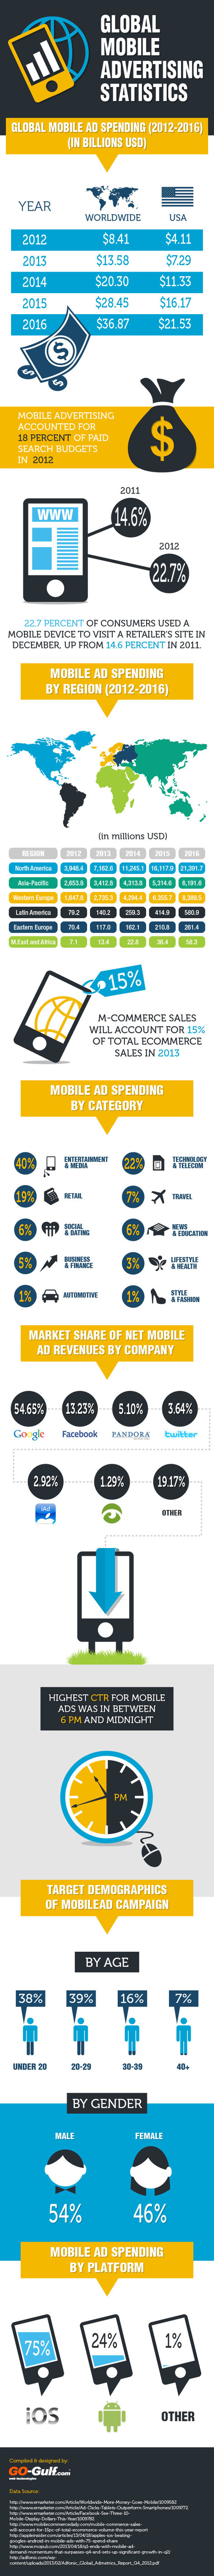 Global Mobile Advertising Stats - an infographic /@BerriePelser | Global Growth Relations | Scoop.it